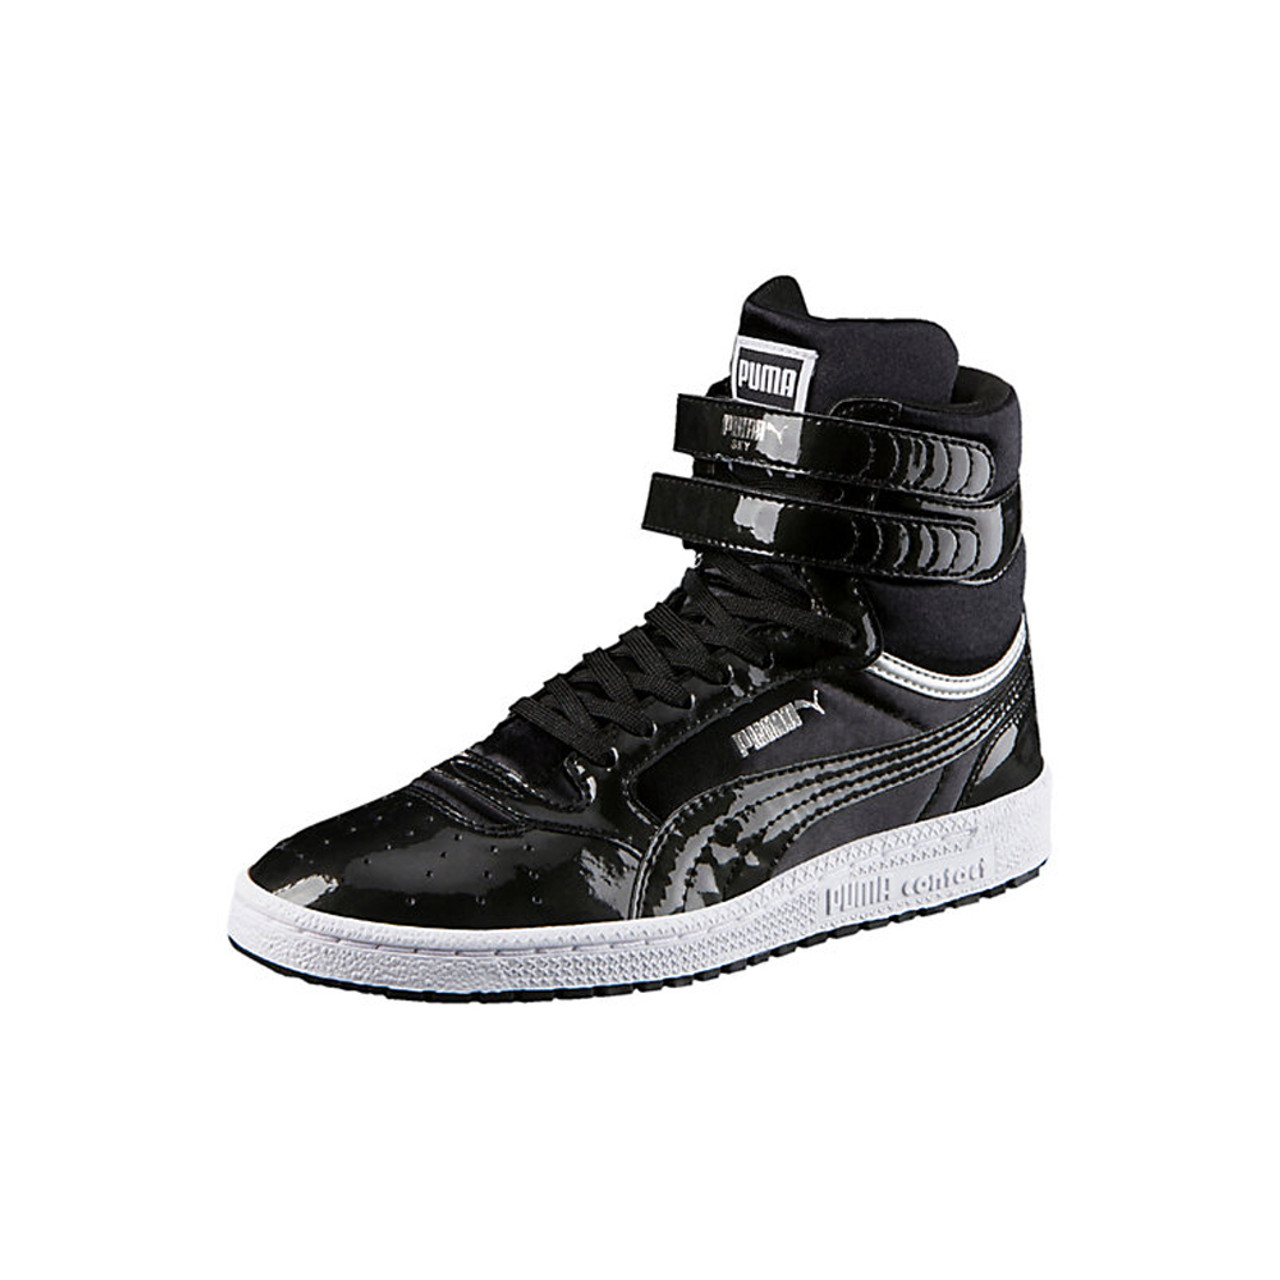 7ca479238323 Puma Women s Sky II Hi Explosive Sneaker Puma Black - Shop now   Shoolu.com